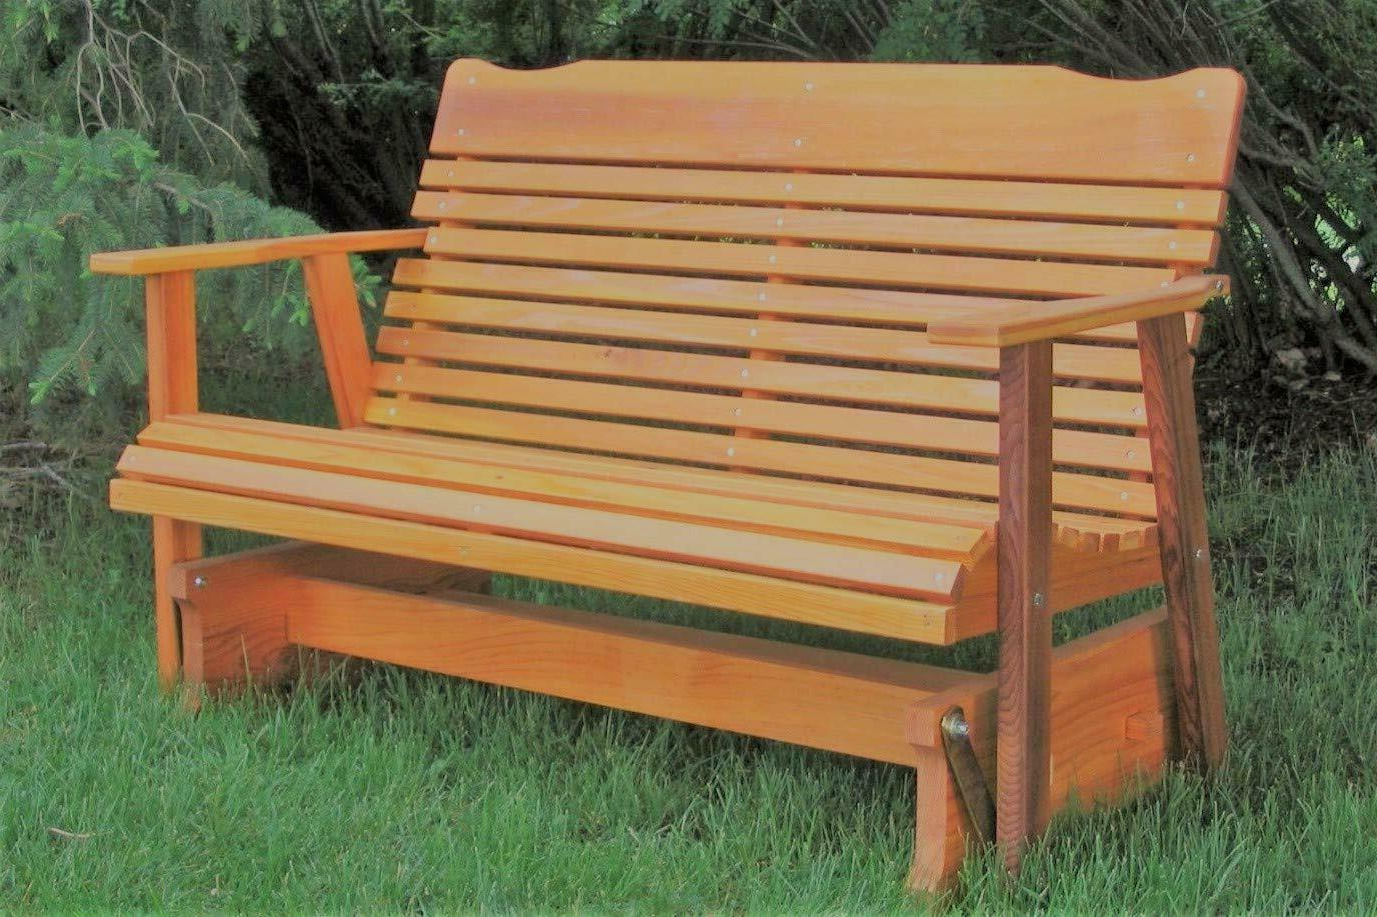 Outdoor Patio Swing Glider Bench Chair S Within Current Wood Glider Bench Outdoor Patio Furniture Garden Deck Rocker Porch Amish Crafted (Gallery 9 of 30)